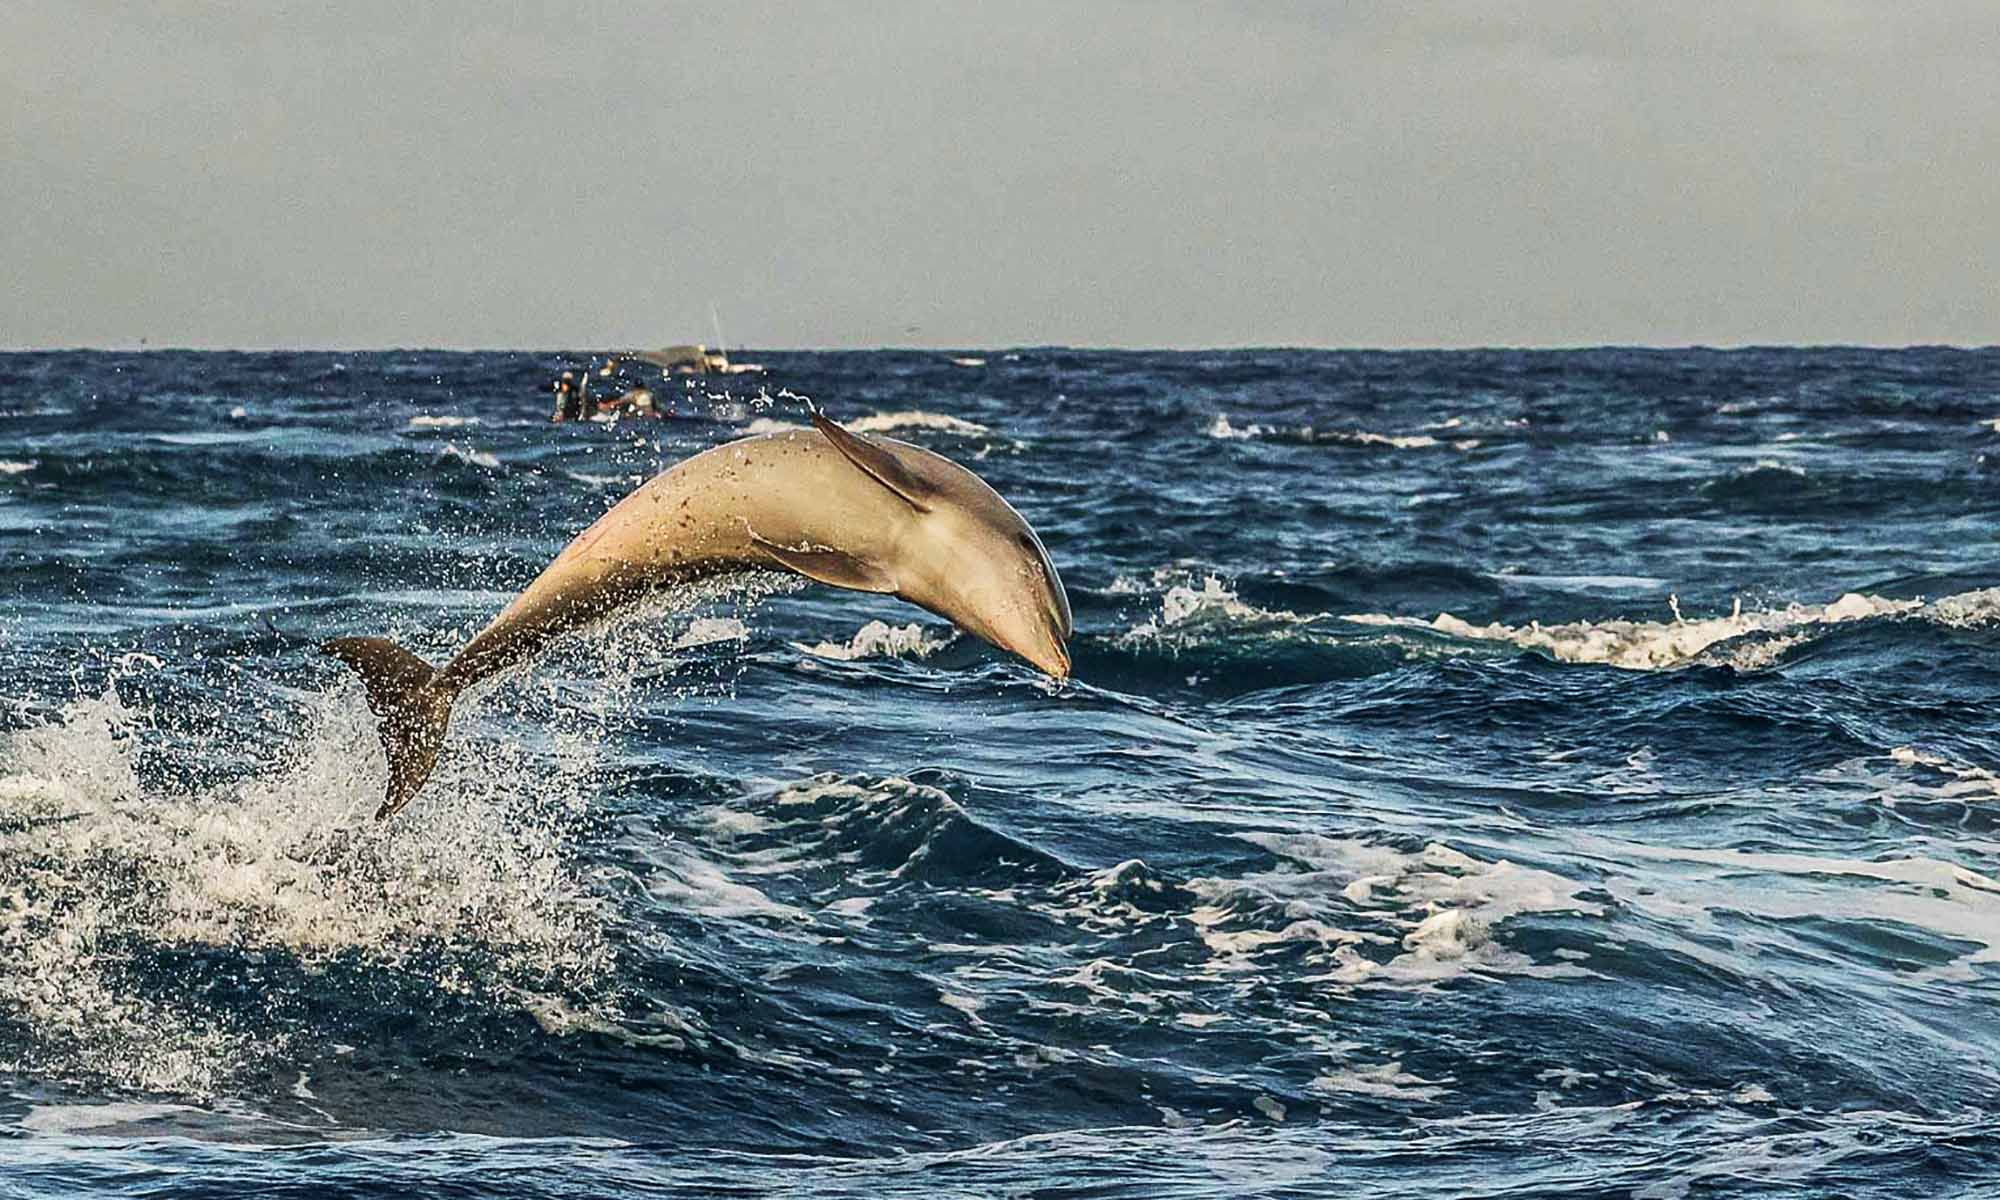 Dolphins jumping in the Tiputa Pass - a famous Rangiroa sight!